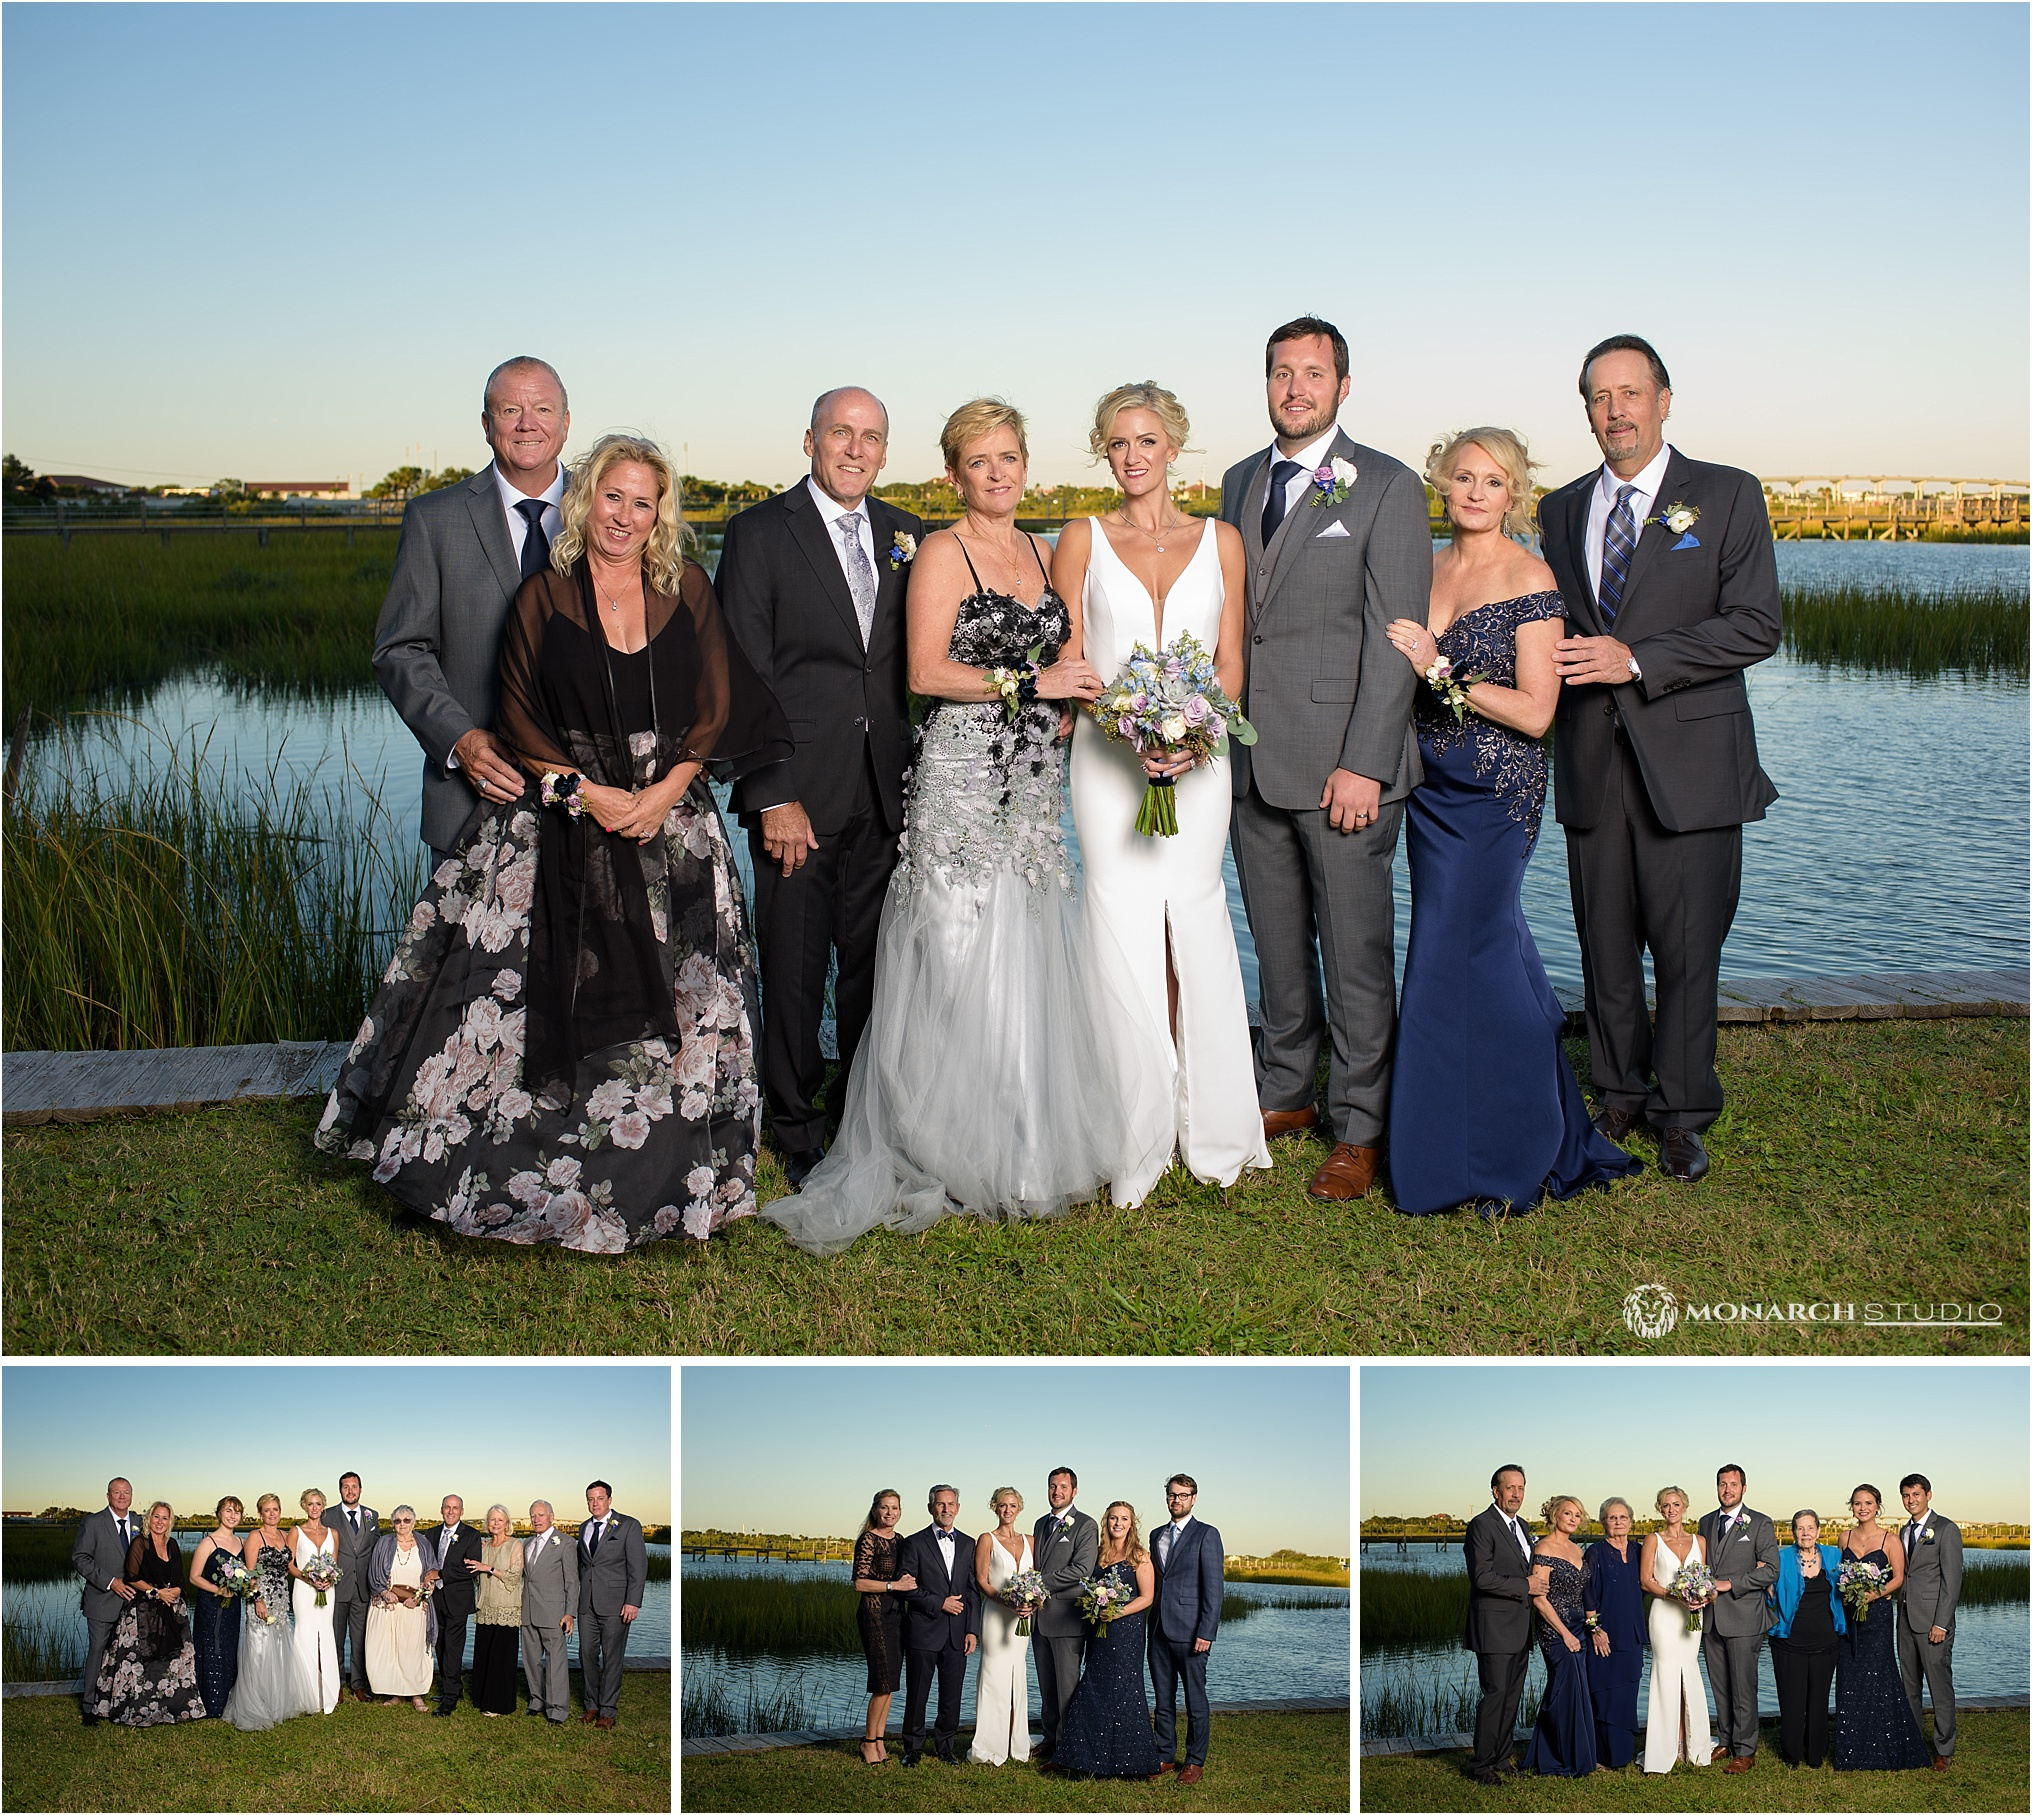 066-wedding-photographs-fountain-of-youth-st-augustine-2018-11-30_0066.jpg